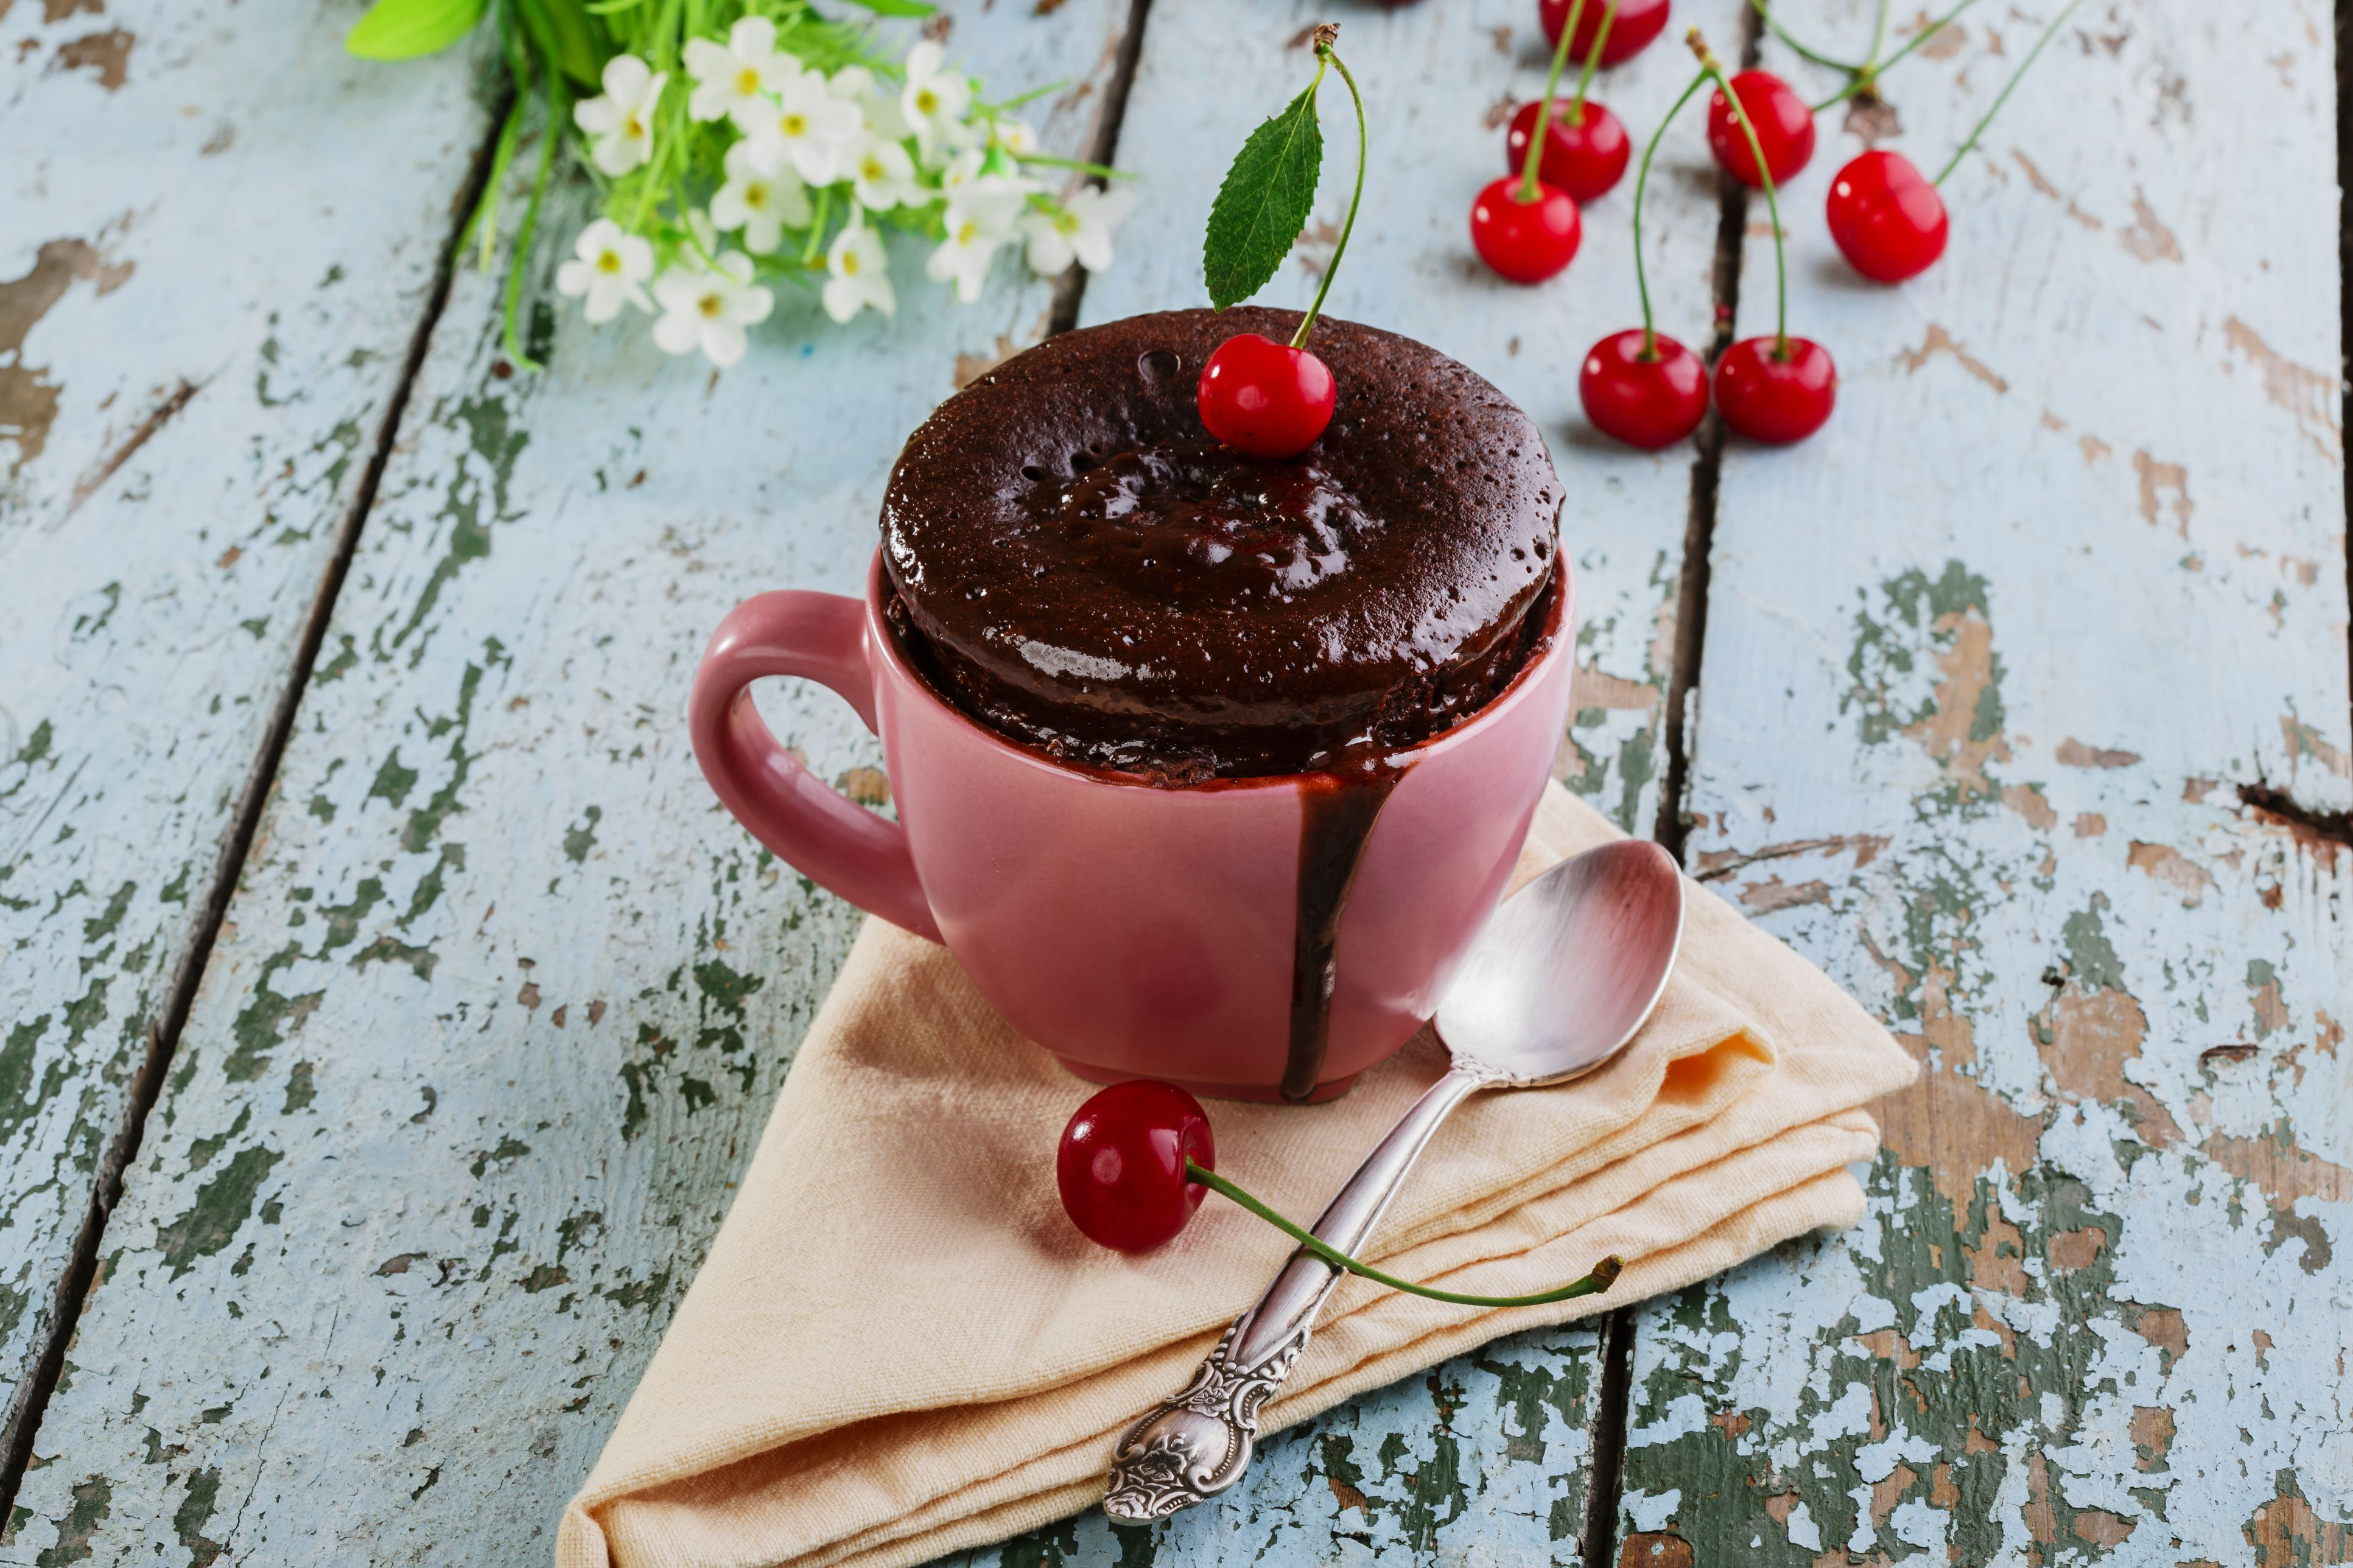 20 Mug Cake Recipes for a Perfectly Sized Treat